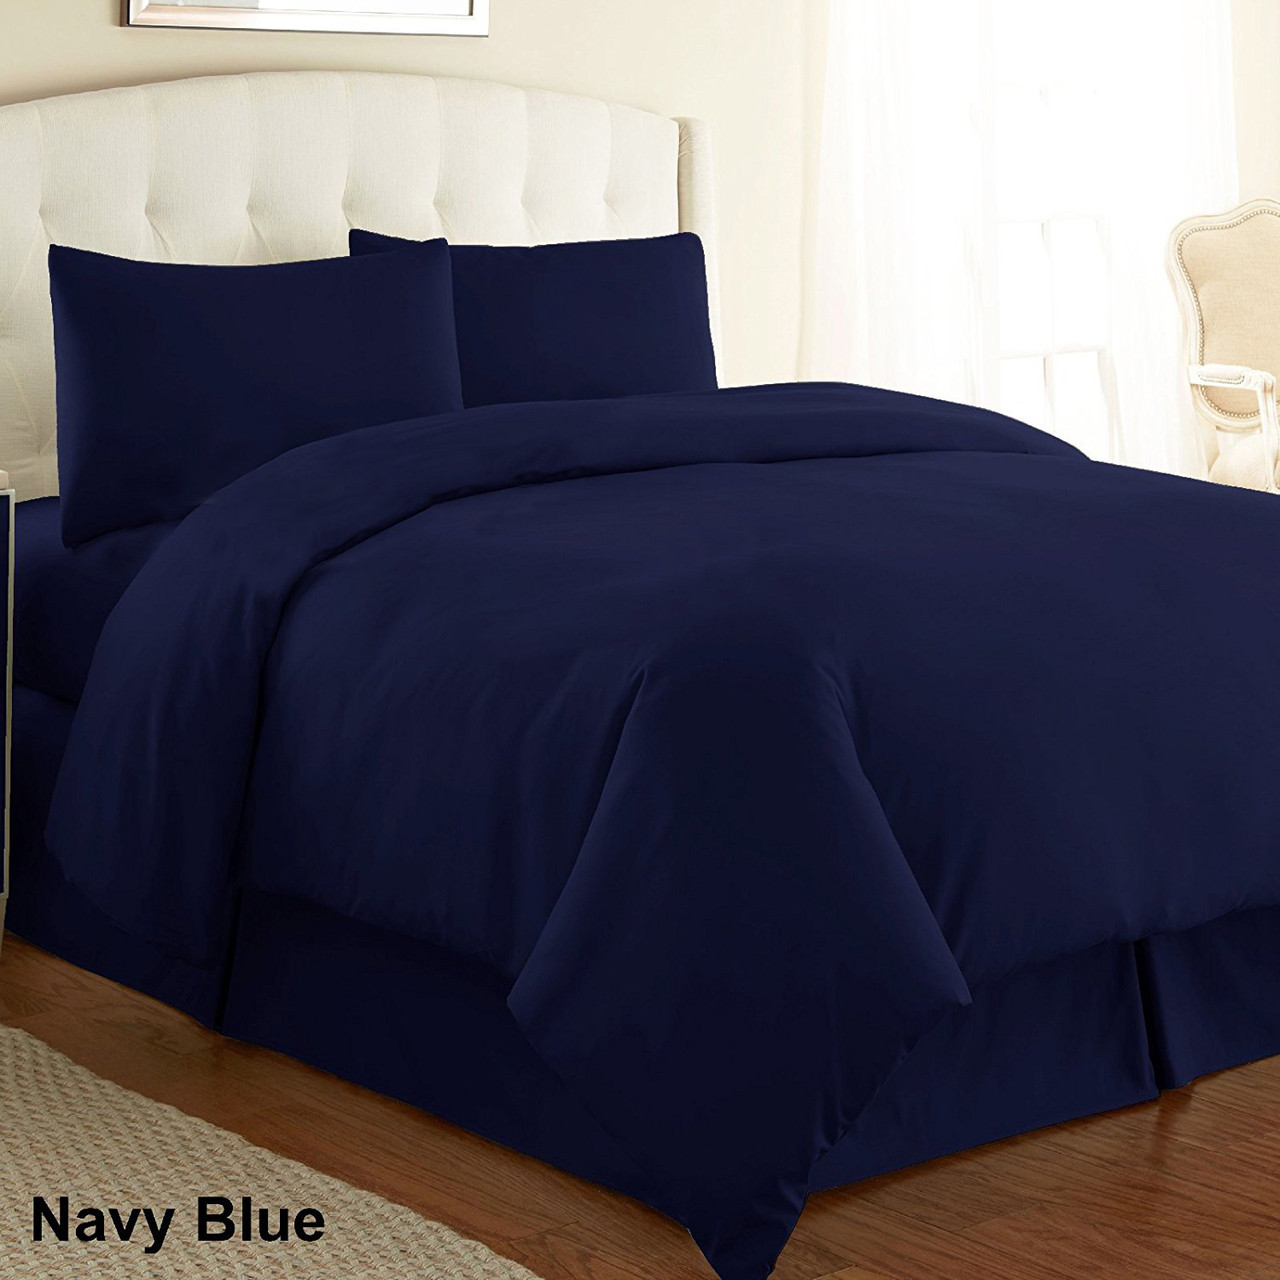 Plain Dyed Duvet Cover Set Navy Blue Luxury Poly Cotton Dyed